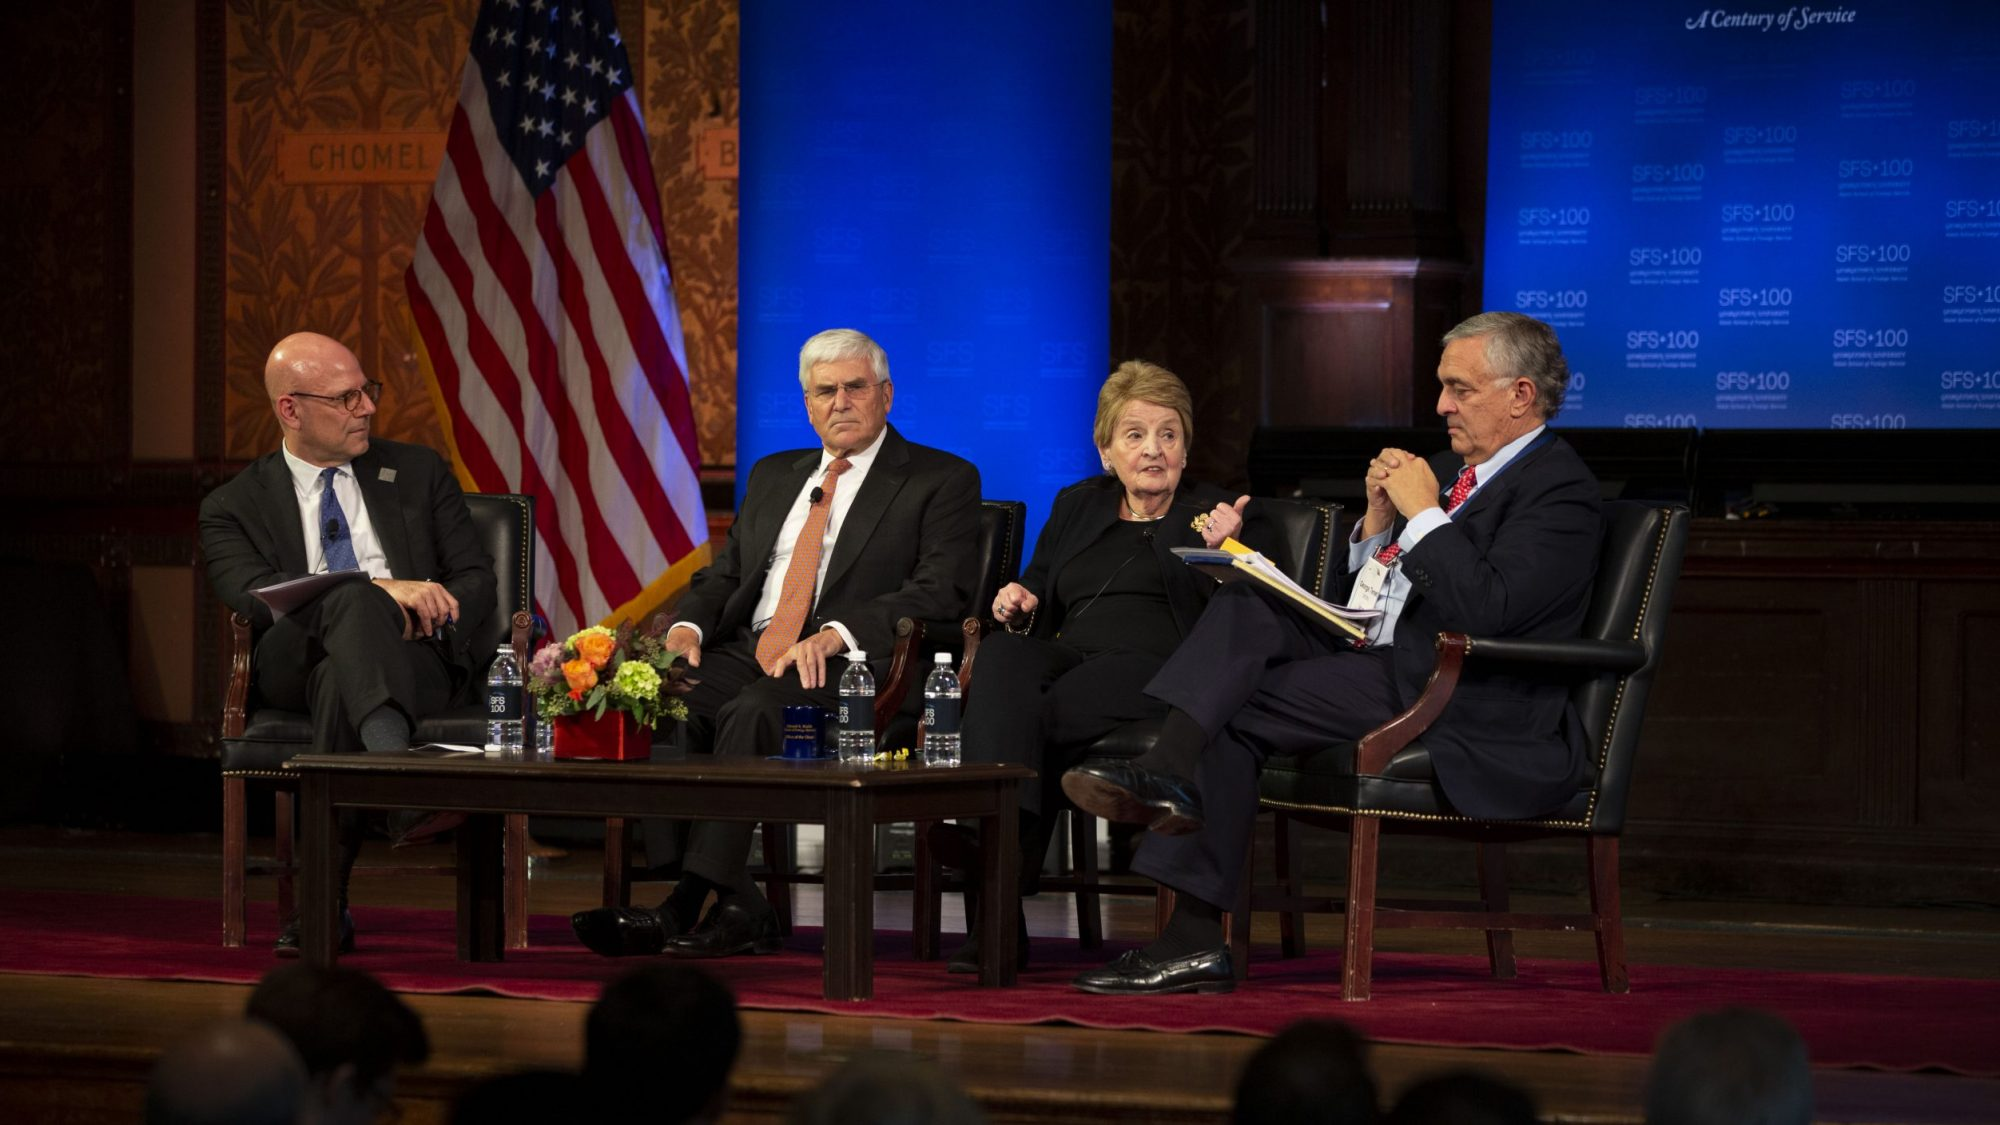 A panel featuring Joel Hellman, George Casey, Madeleine Albright, and George Tenet